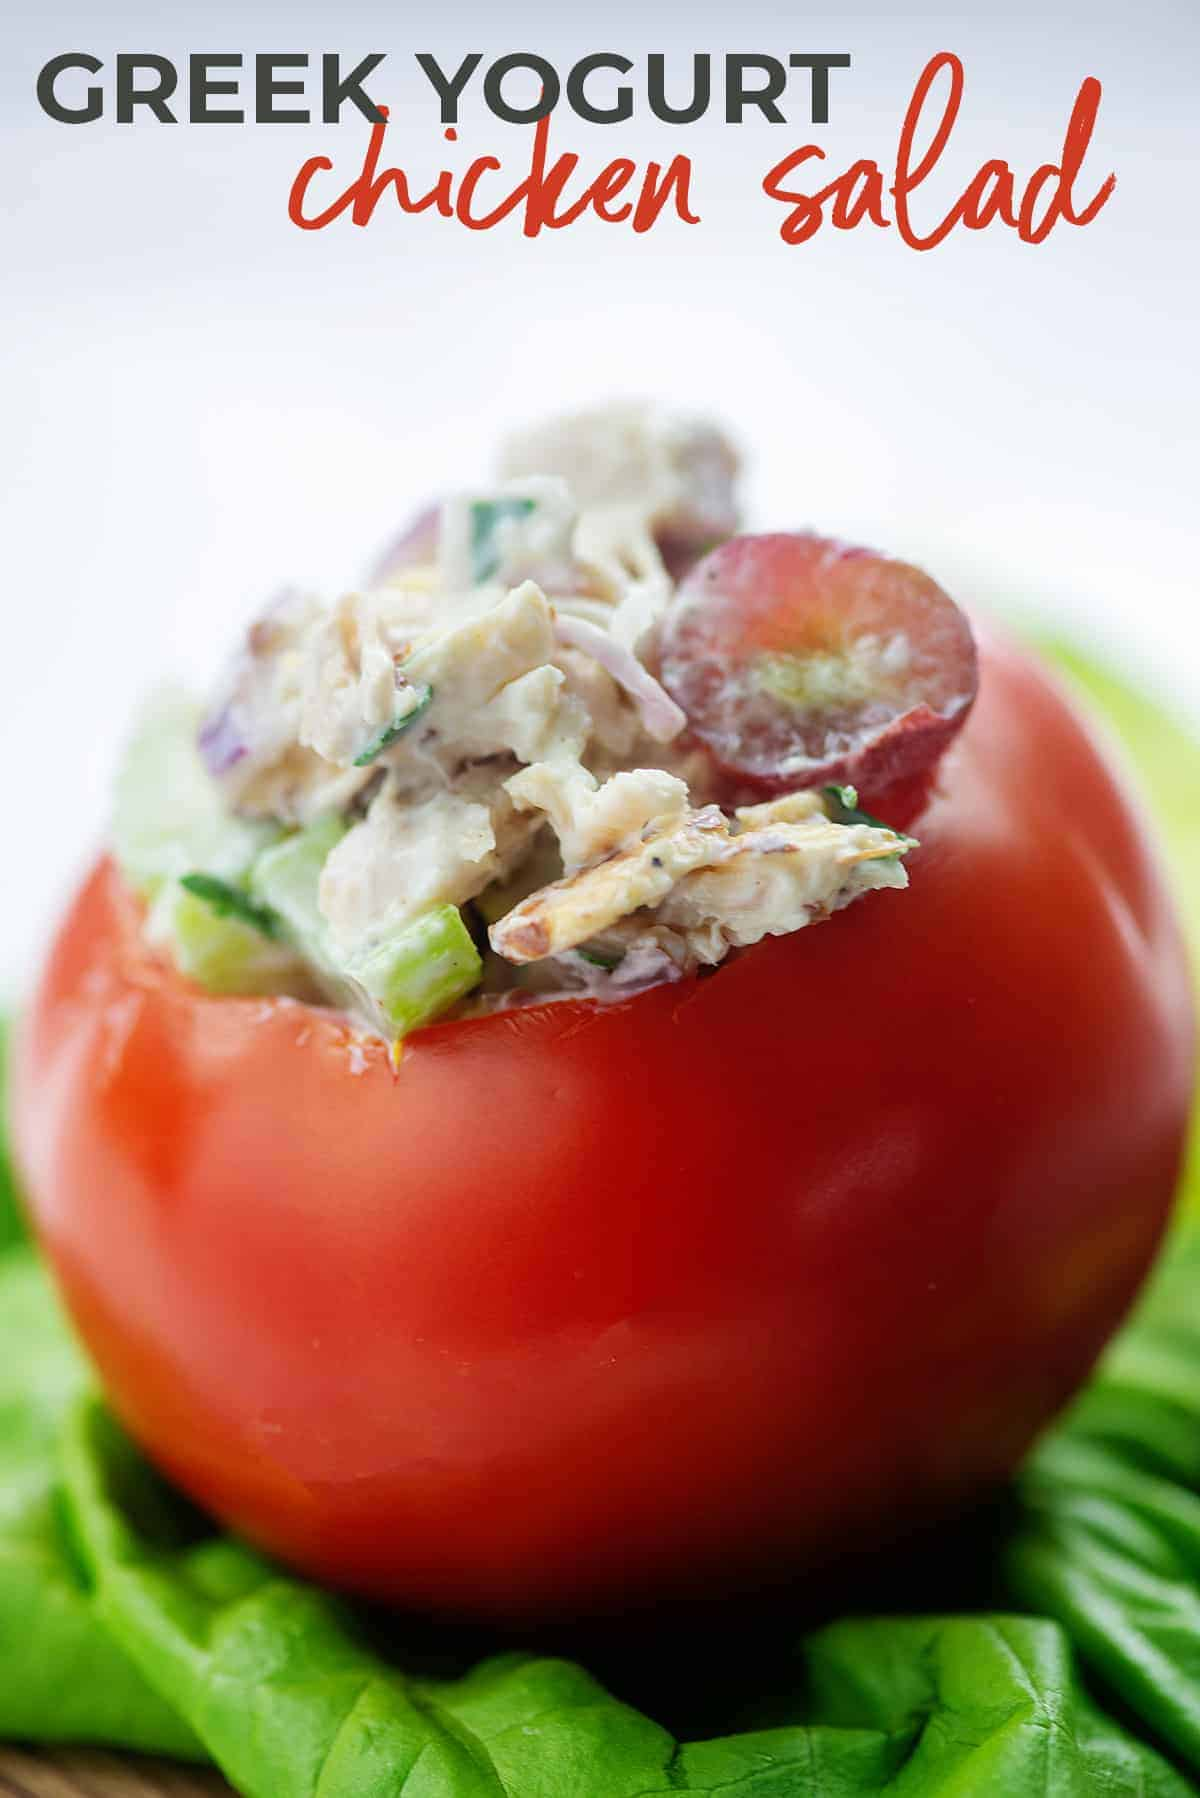 greek yogurt chicken salad stuffed in a tomato